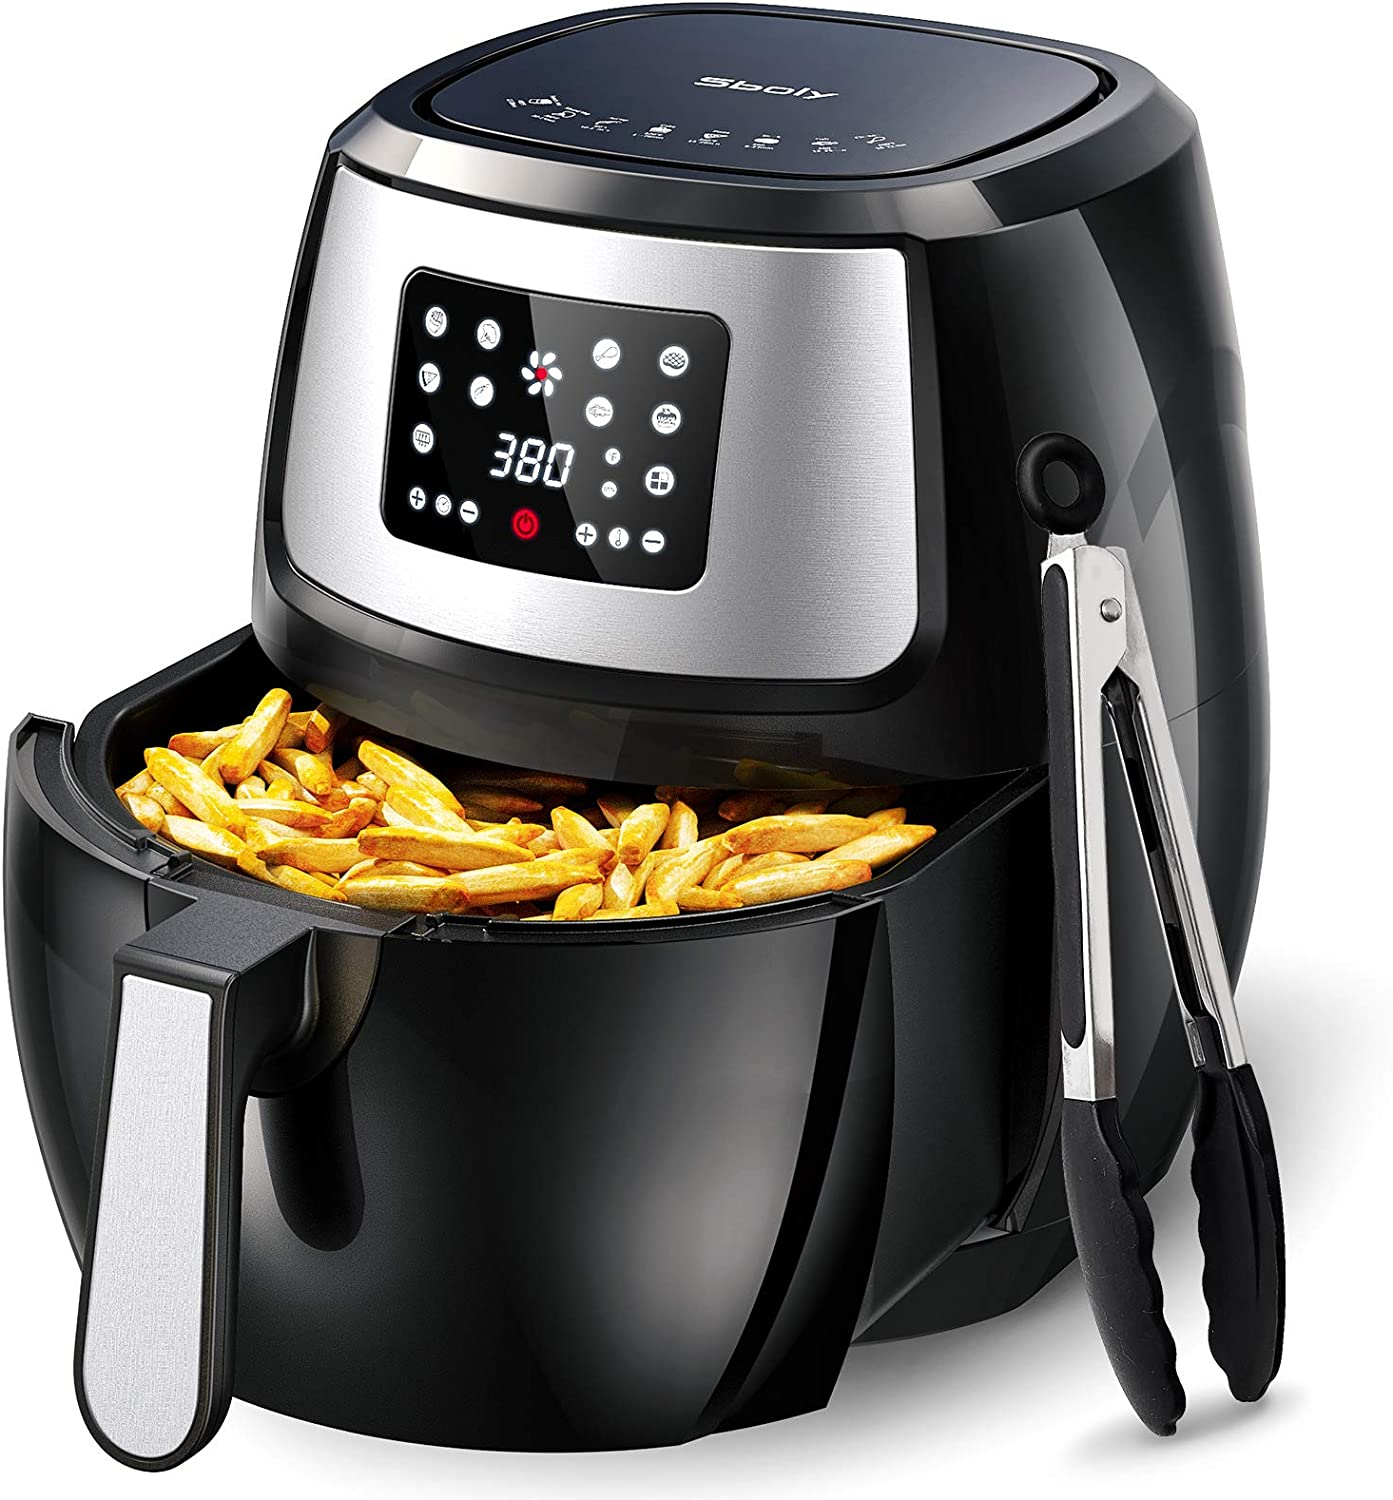 Sboly 8 in 1 Air Fryer, 8.9 Qt with LCD Digital Touch Screen including Cooking Tongs and Recipe Book, Airfryer with Water-based Non-stick Coating Grill Shelf and Frying Basket